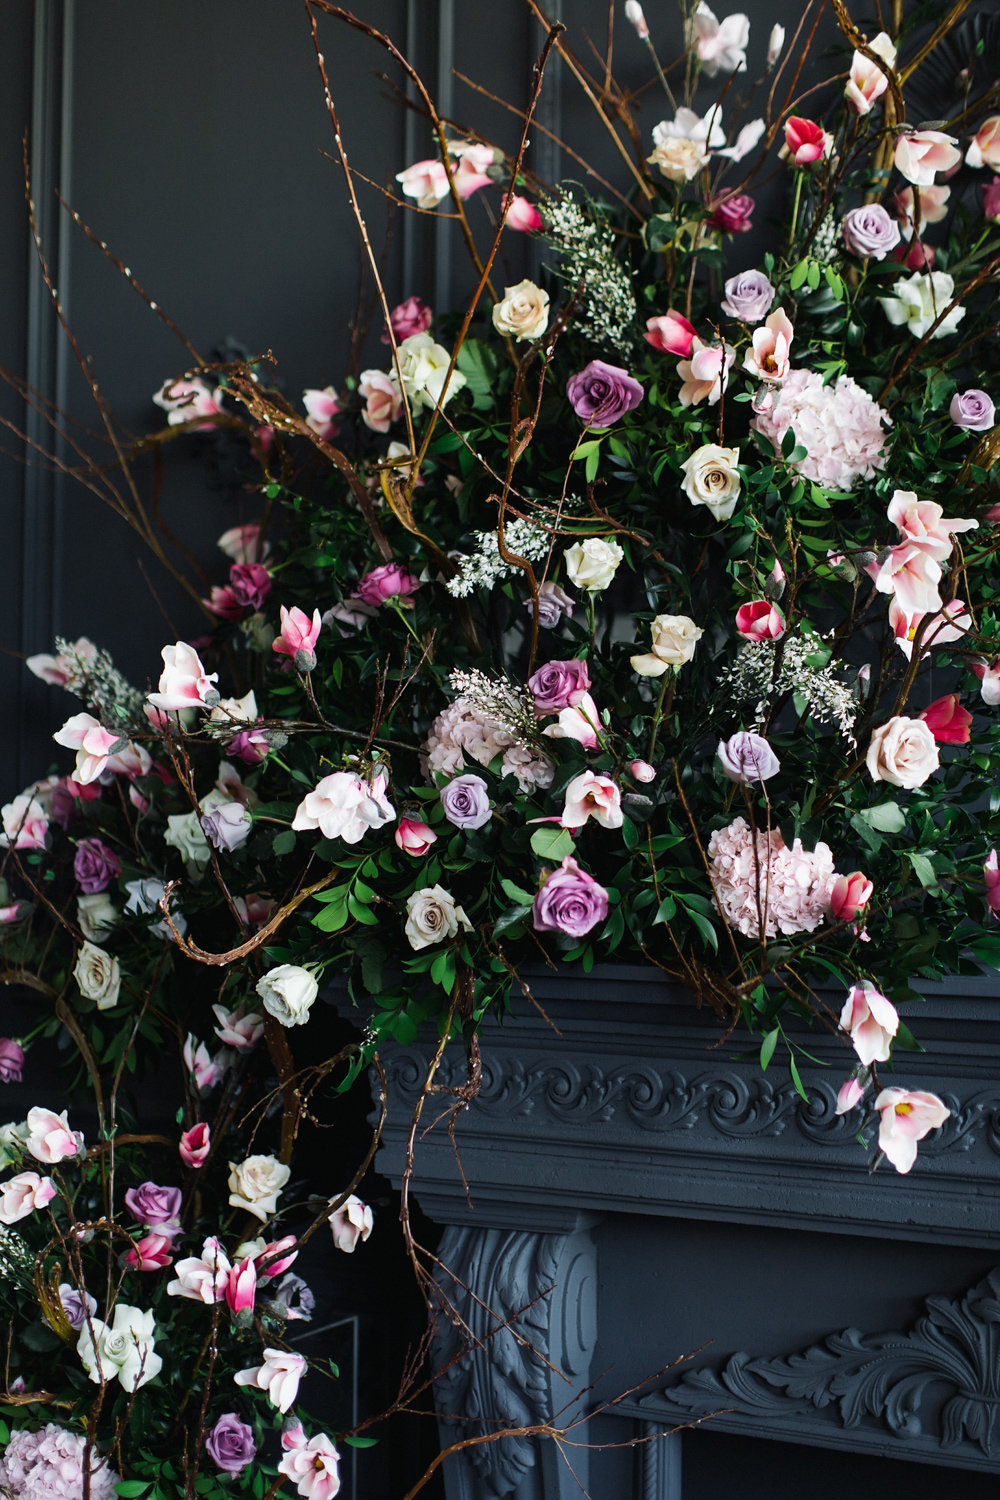 August In Bloom - Lush garland up close - Magnolia Dreams (The Bridal Affair)